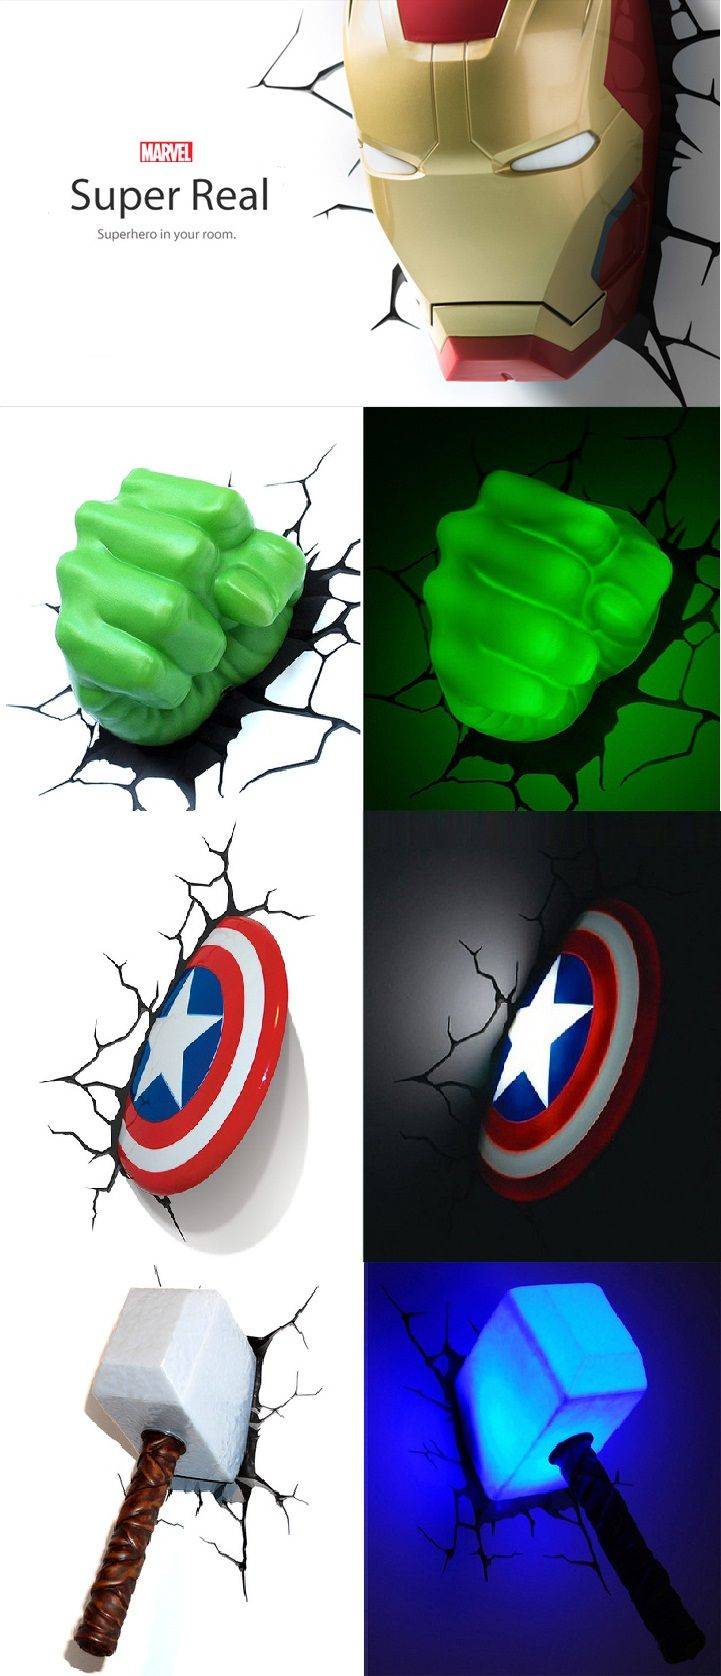 Awesome 3D Marvel Superhero Nightlights. So want to do this for my future child or movie room which ever comes first